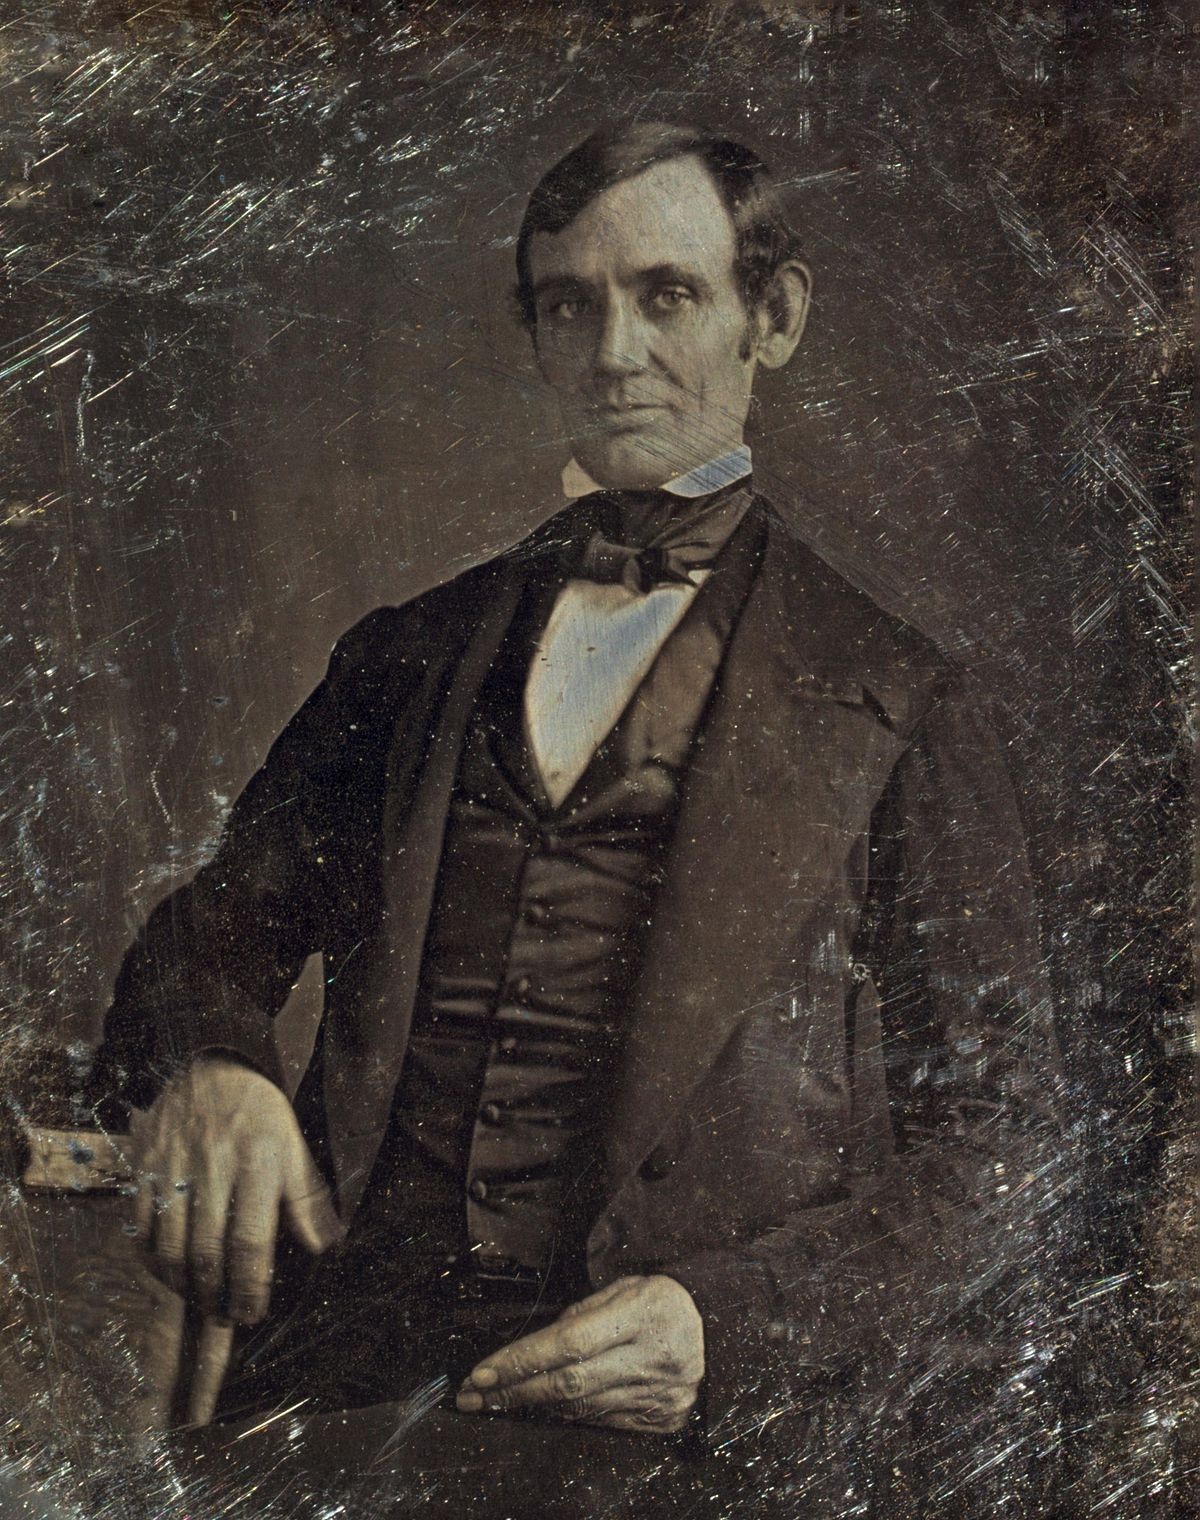 from Sincere abe lincoln gay senator strong